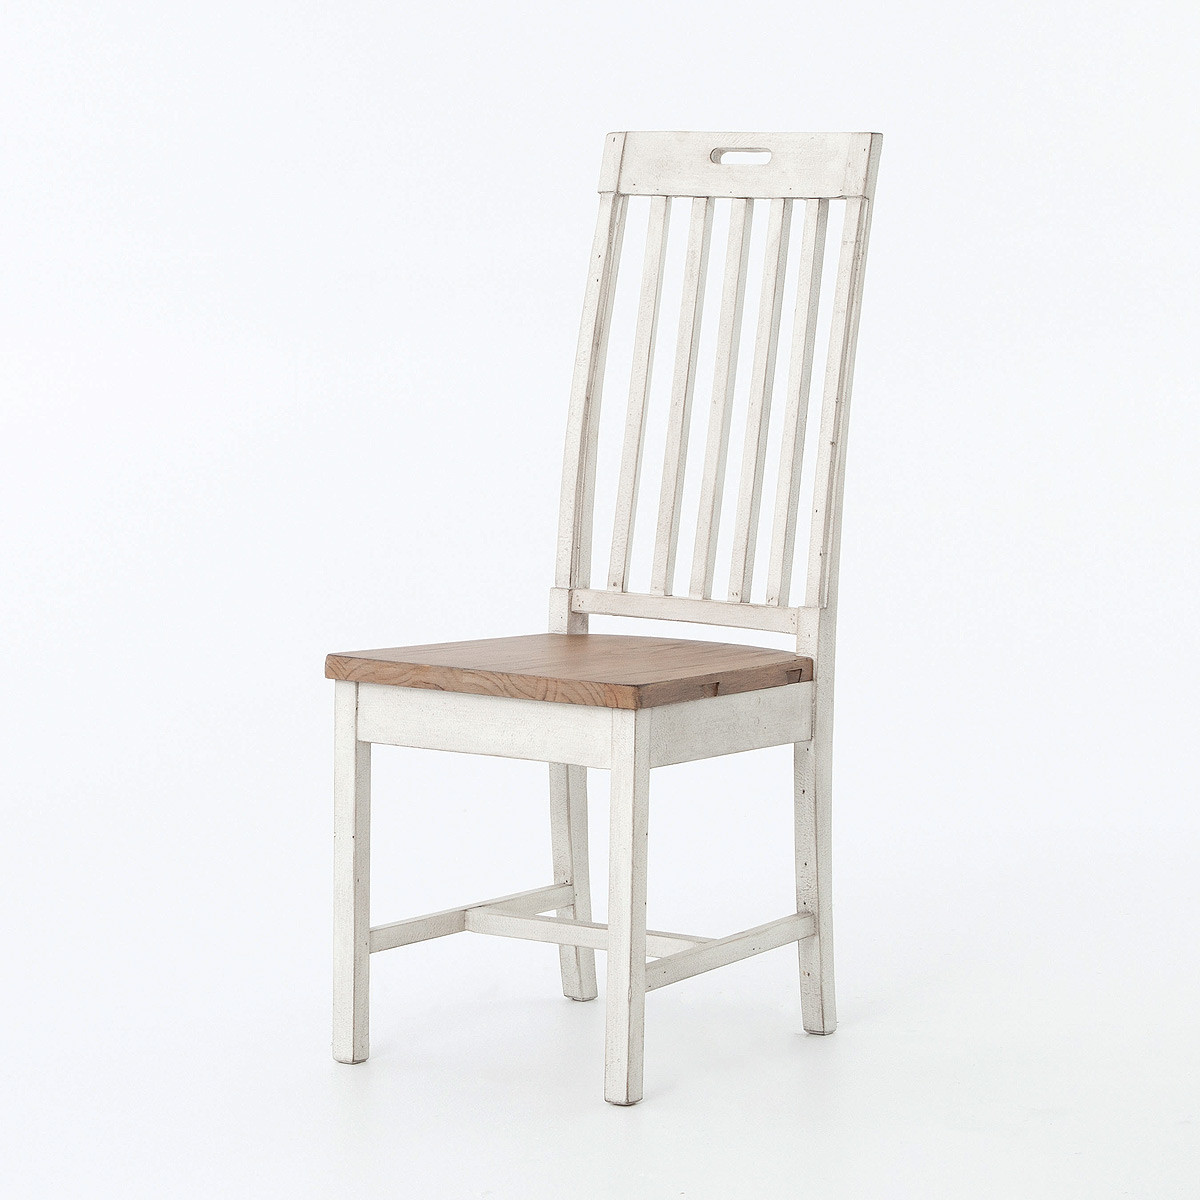 Rustic White Dining Chairs Fresh At Classic Traditional Room With